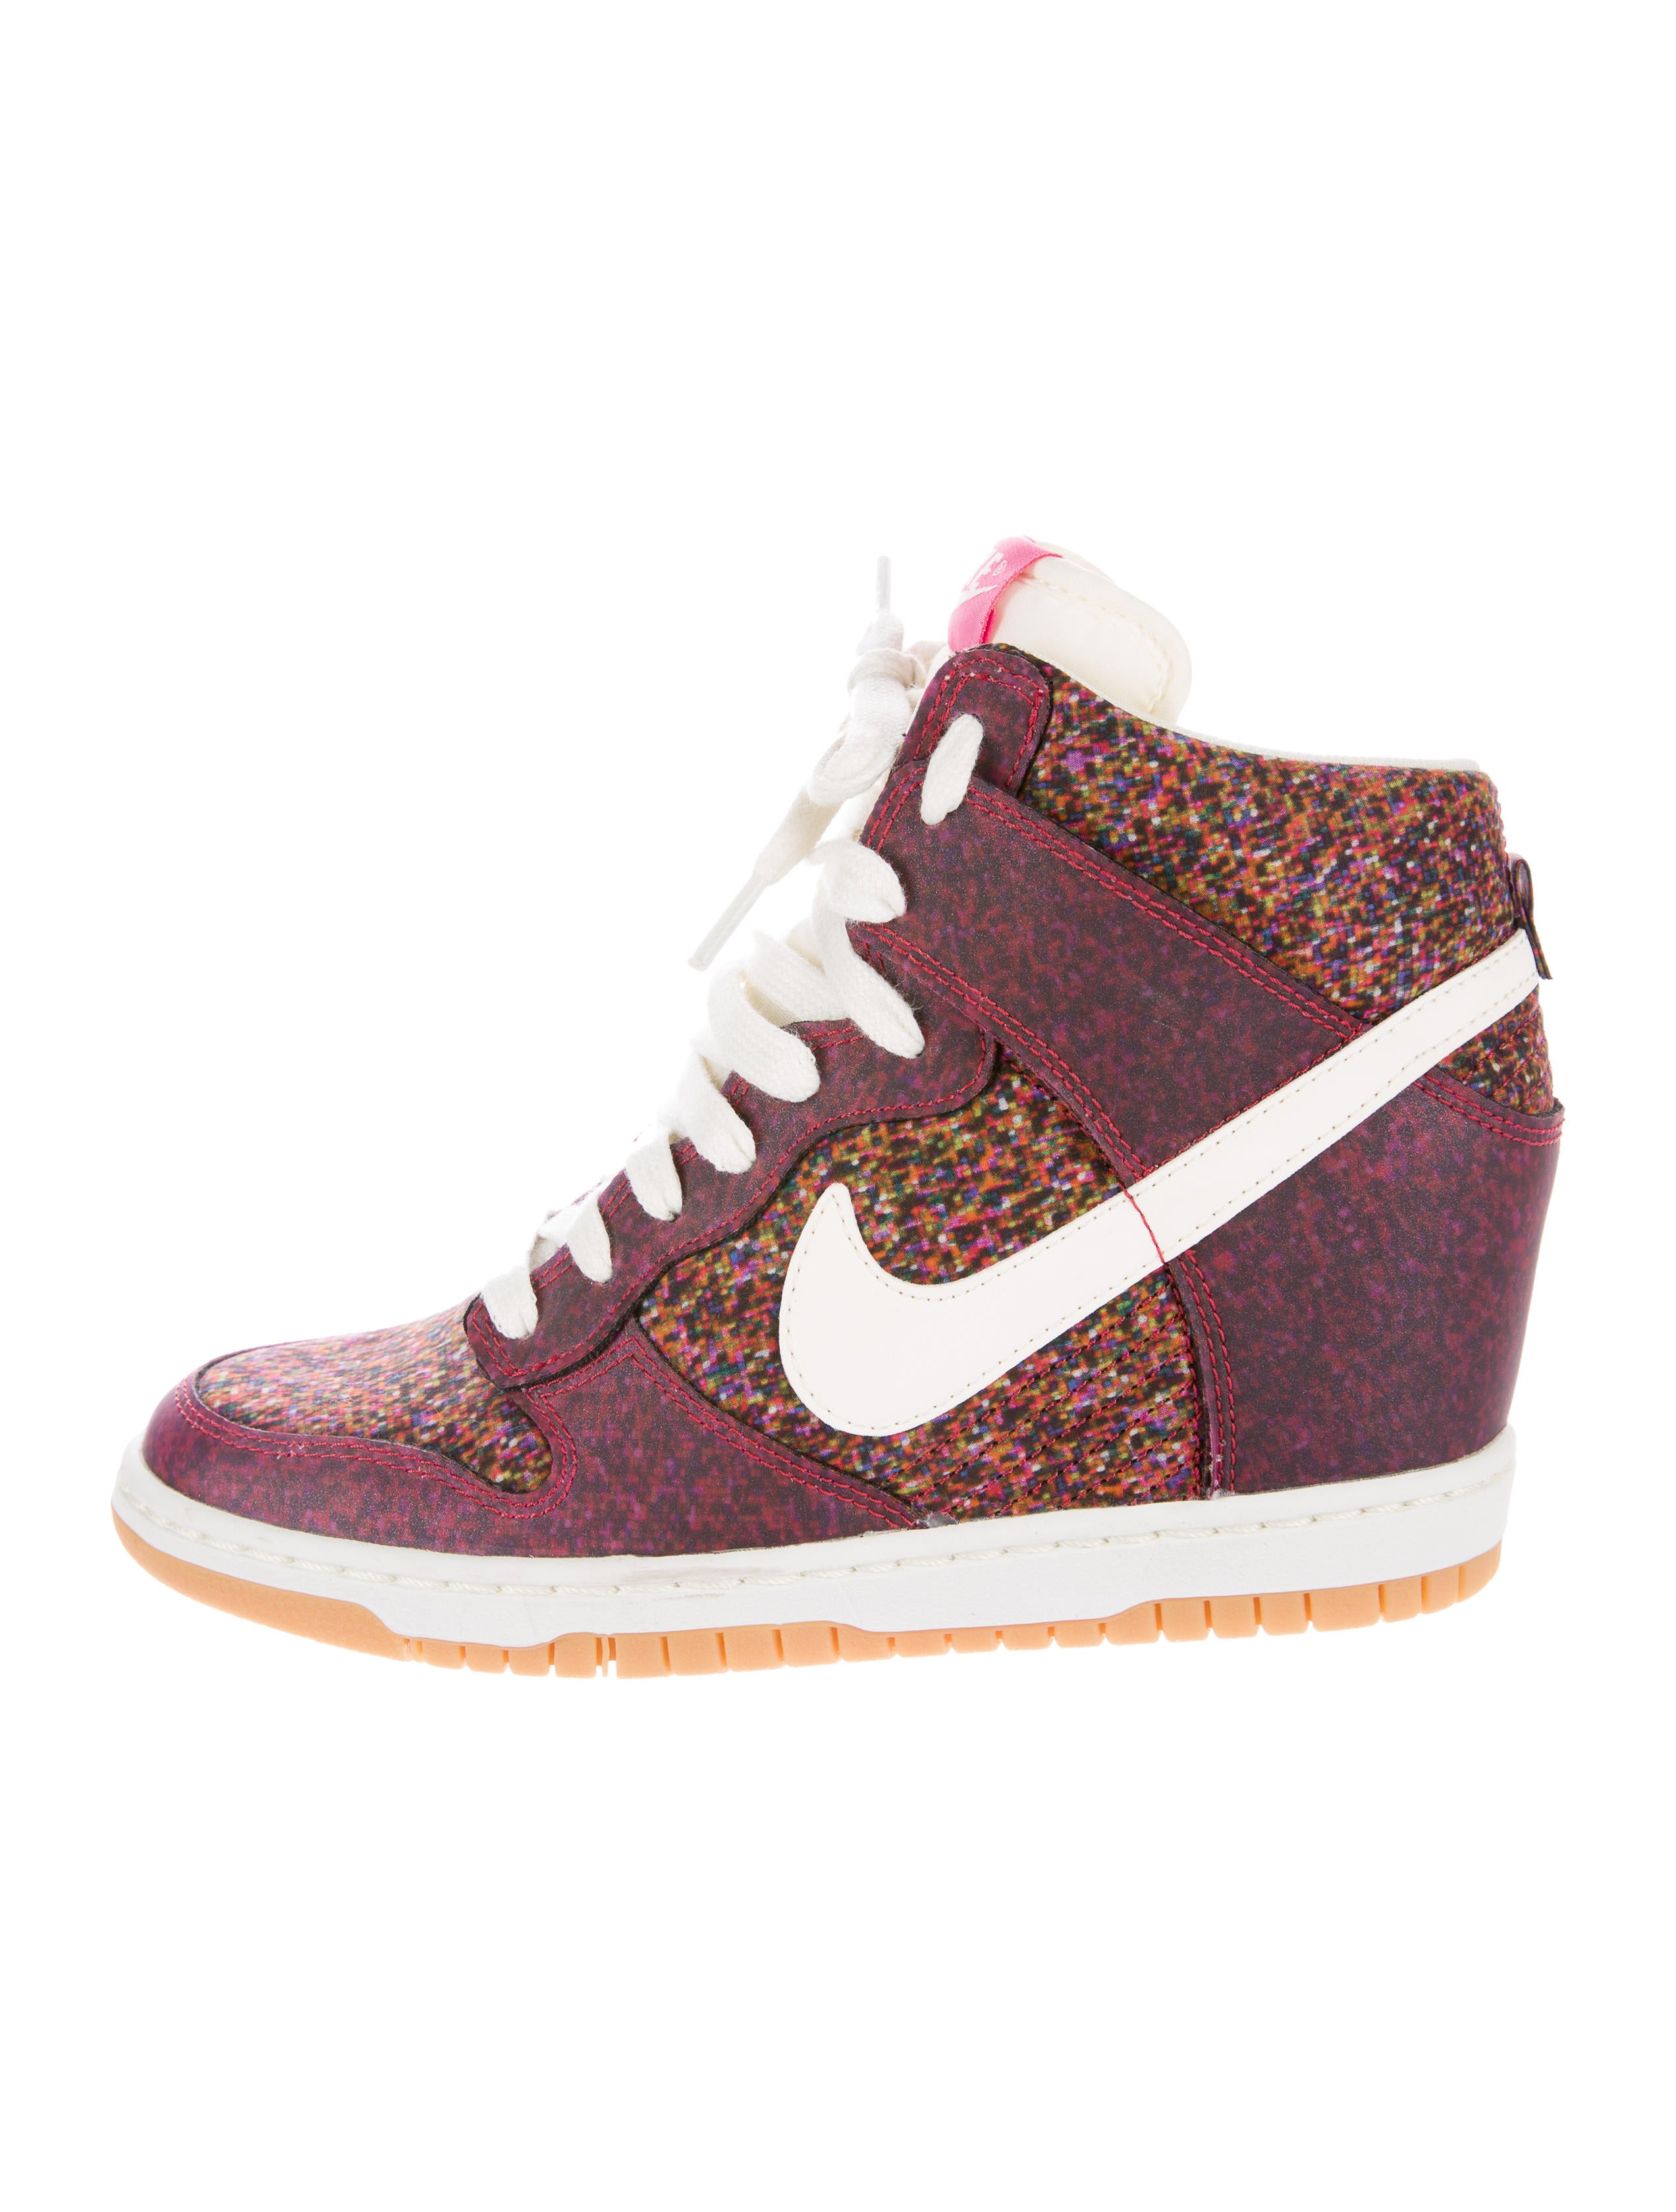 f28e40f3e10a ... essential wedge sneaker in blue 8b076 cf70d  50% off nike dunk sky hi  liberty sneakers w tags 2abda 74da4